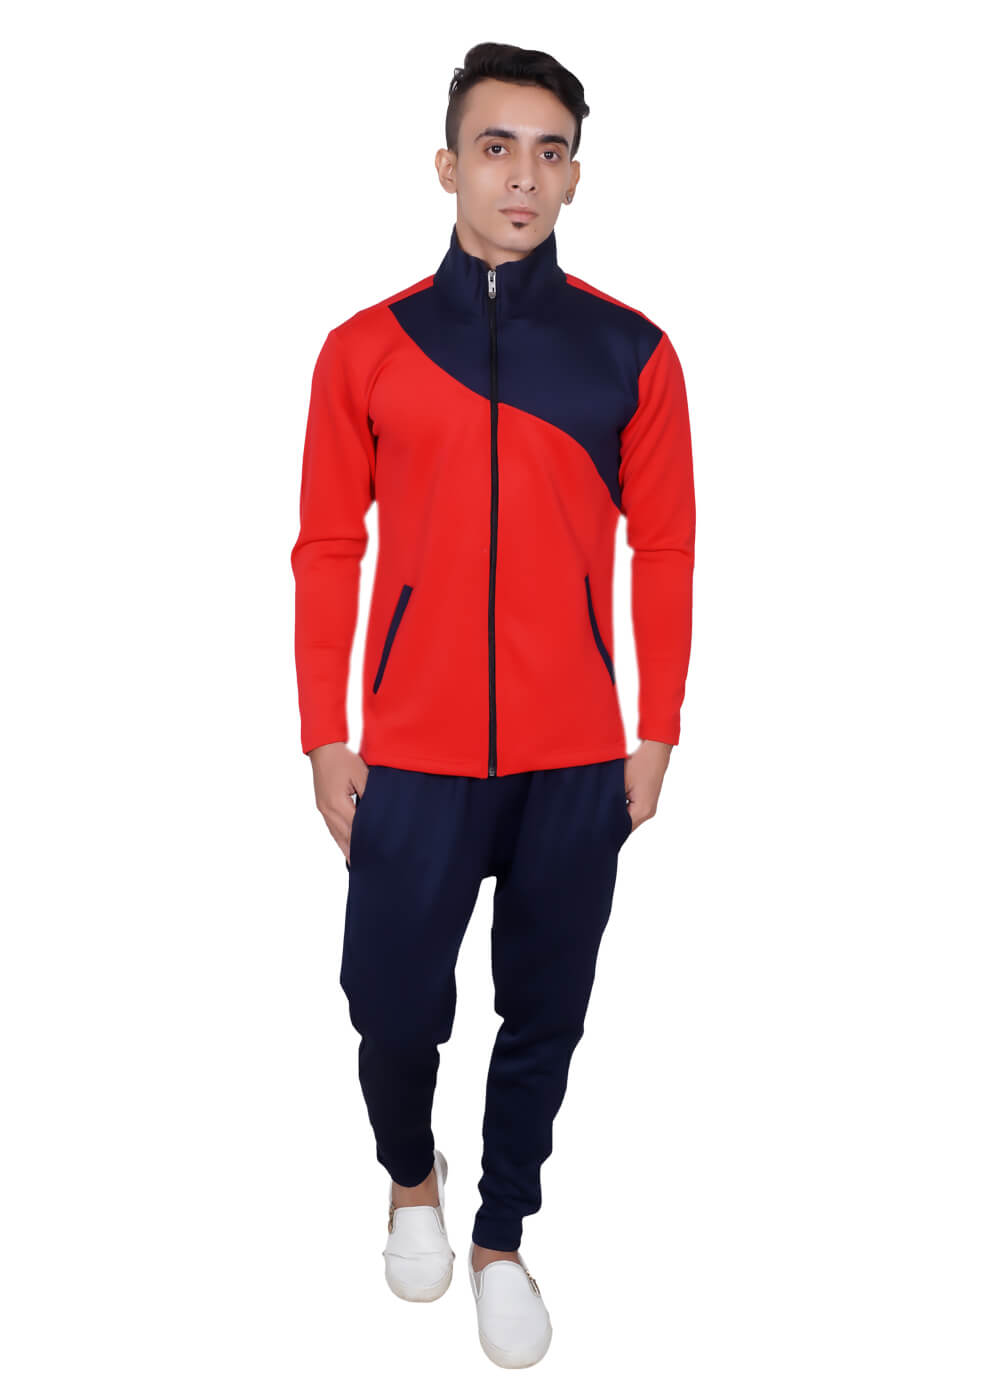 Cheap Tracksuits Manufacturers in Angola